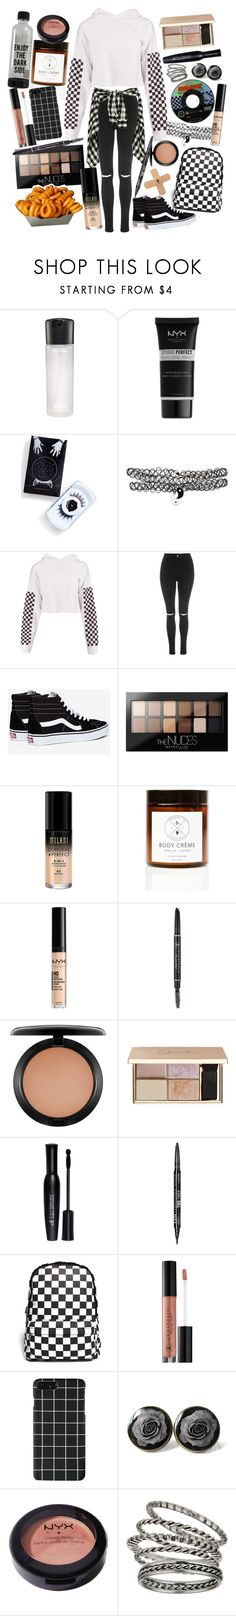 """""""She said I'm a crybaby, I can't be up lately. Girl, you drive me crazy, AMG Mercedes. Speedin' down the highway, lookin' at the street lights"""" by thelyricsmatter ❤ liked on Polyvore featuring MAC Cosmetics, NYX, Black Magic Lashes, Hot Topic, Boohoo, Topshop, Vans, Maybelline, Milani and Birchrose + Co."""